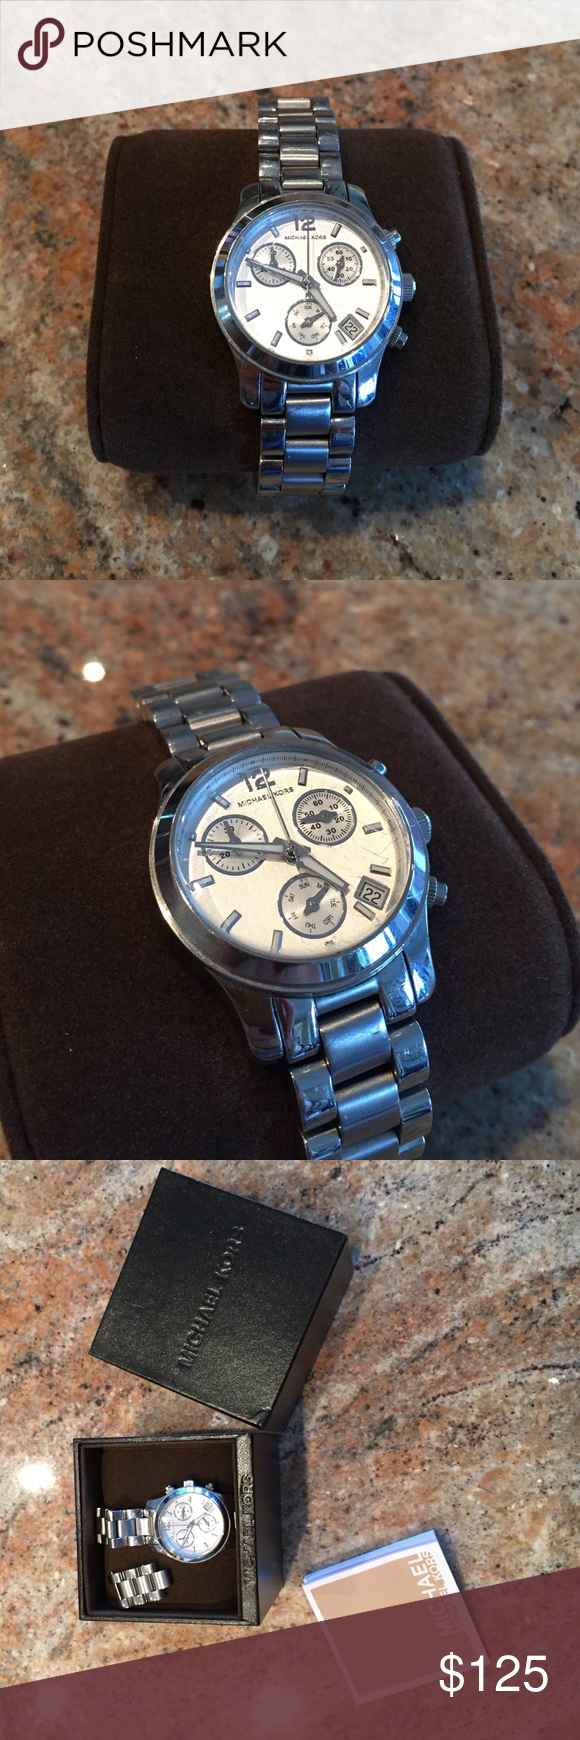 Michael Kors Watch Michael Kors Chronograph Watch Michael Kors